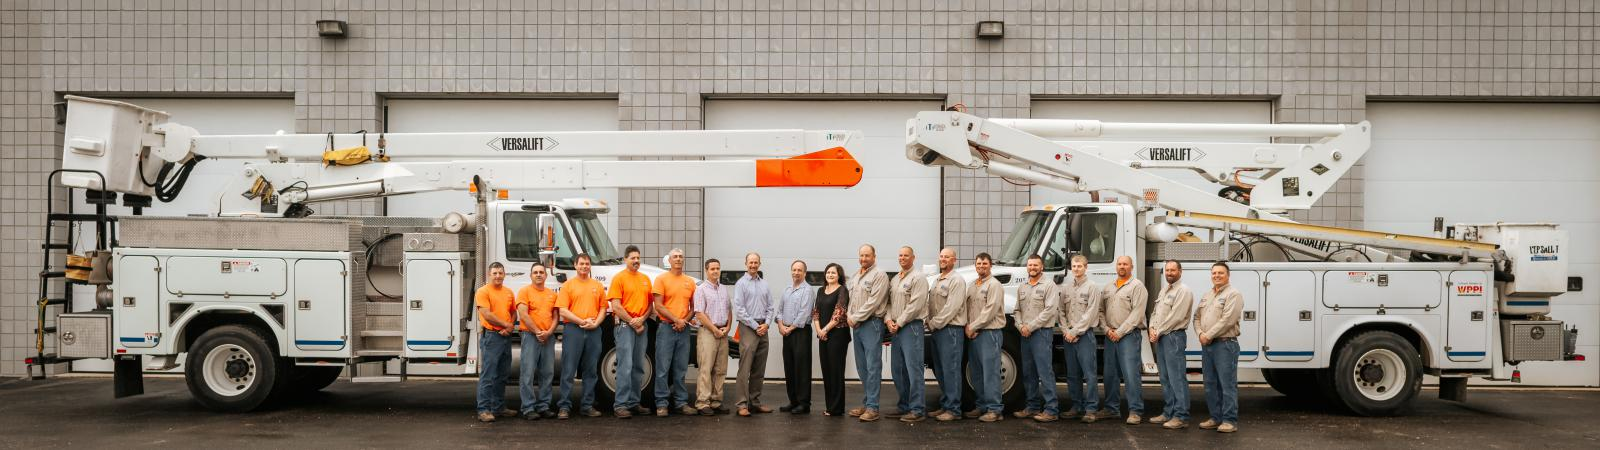 Hartford utilities staff standing in front of two bucket trucks